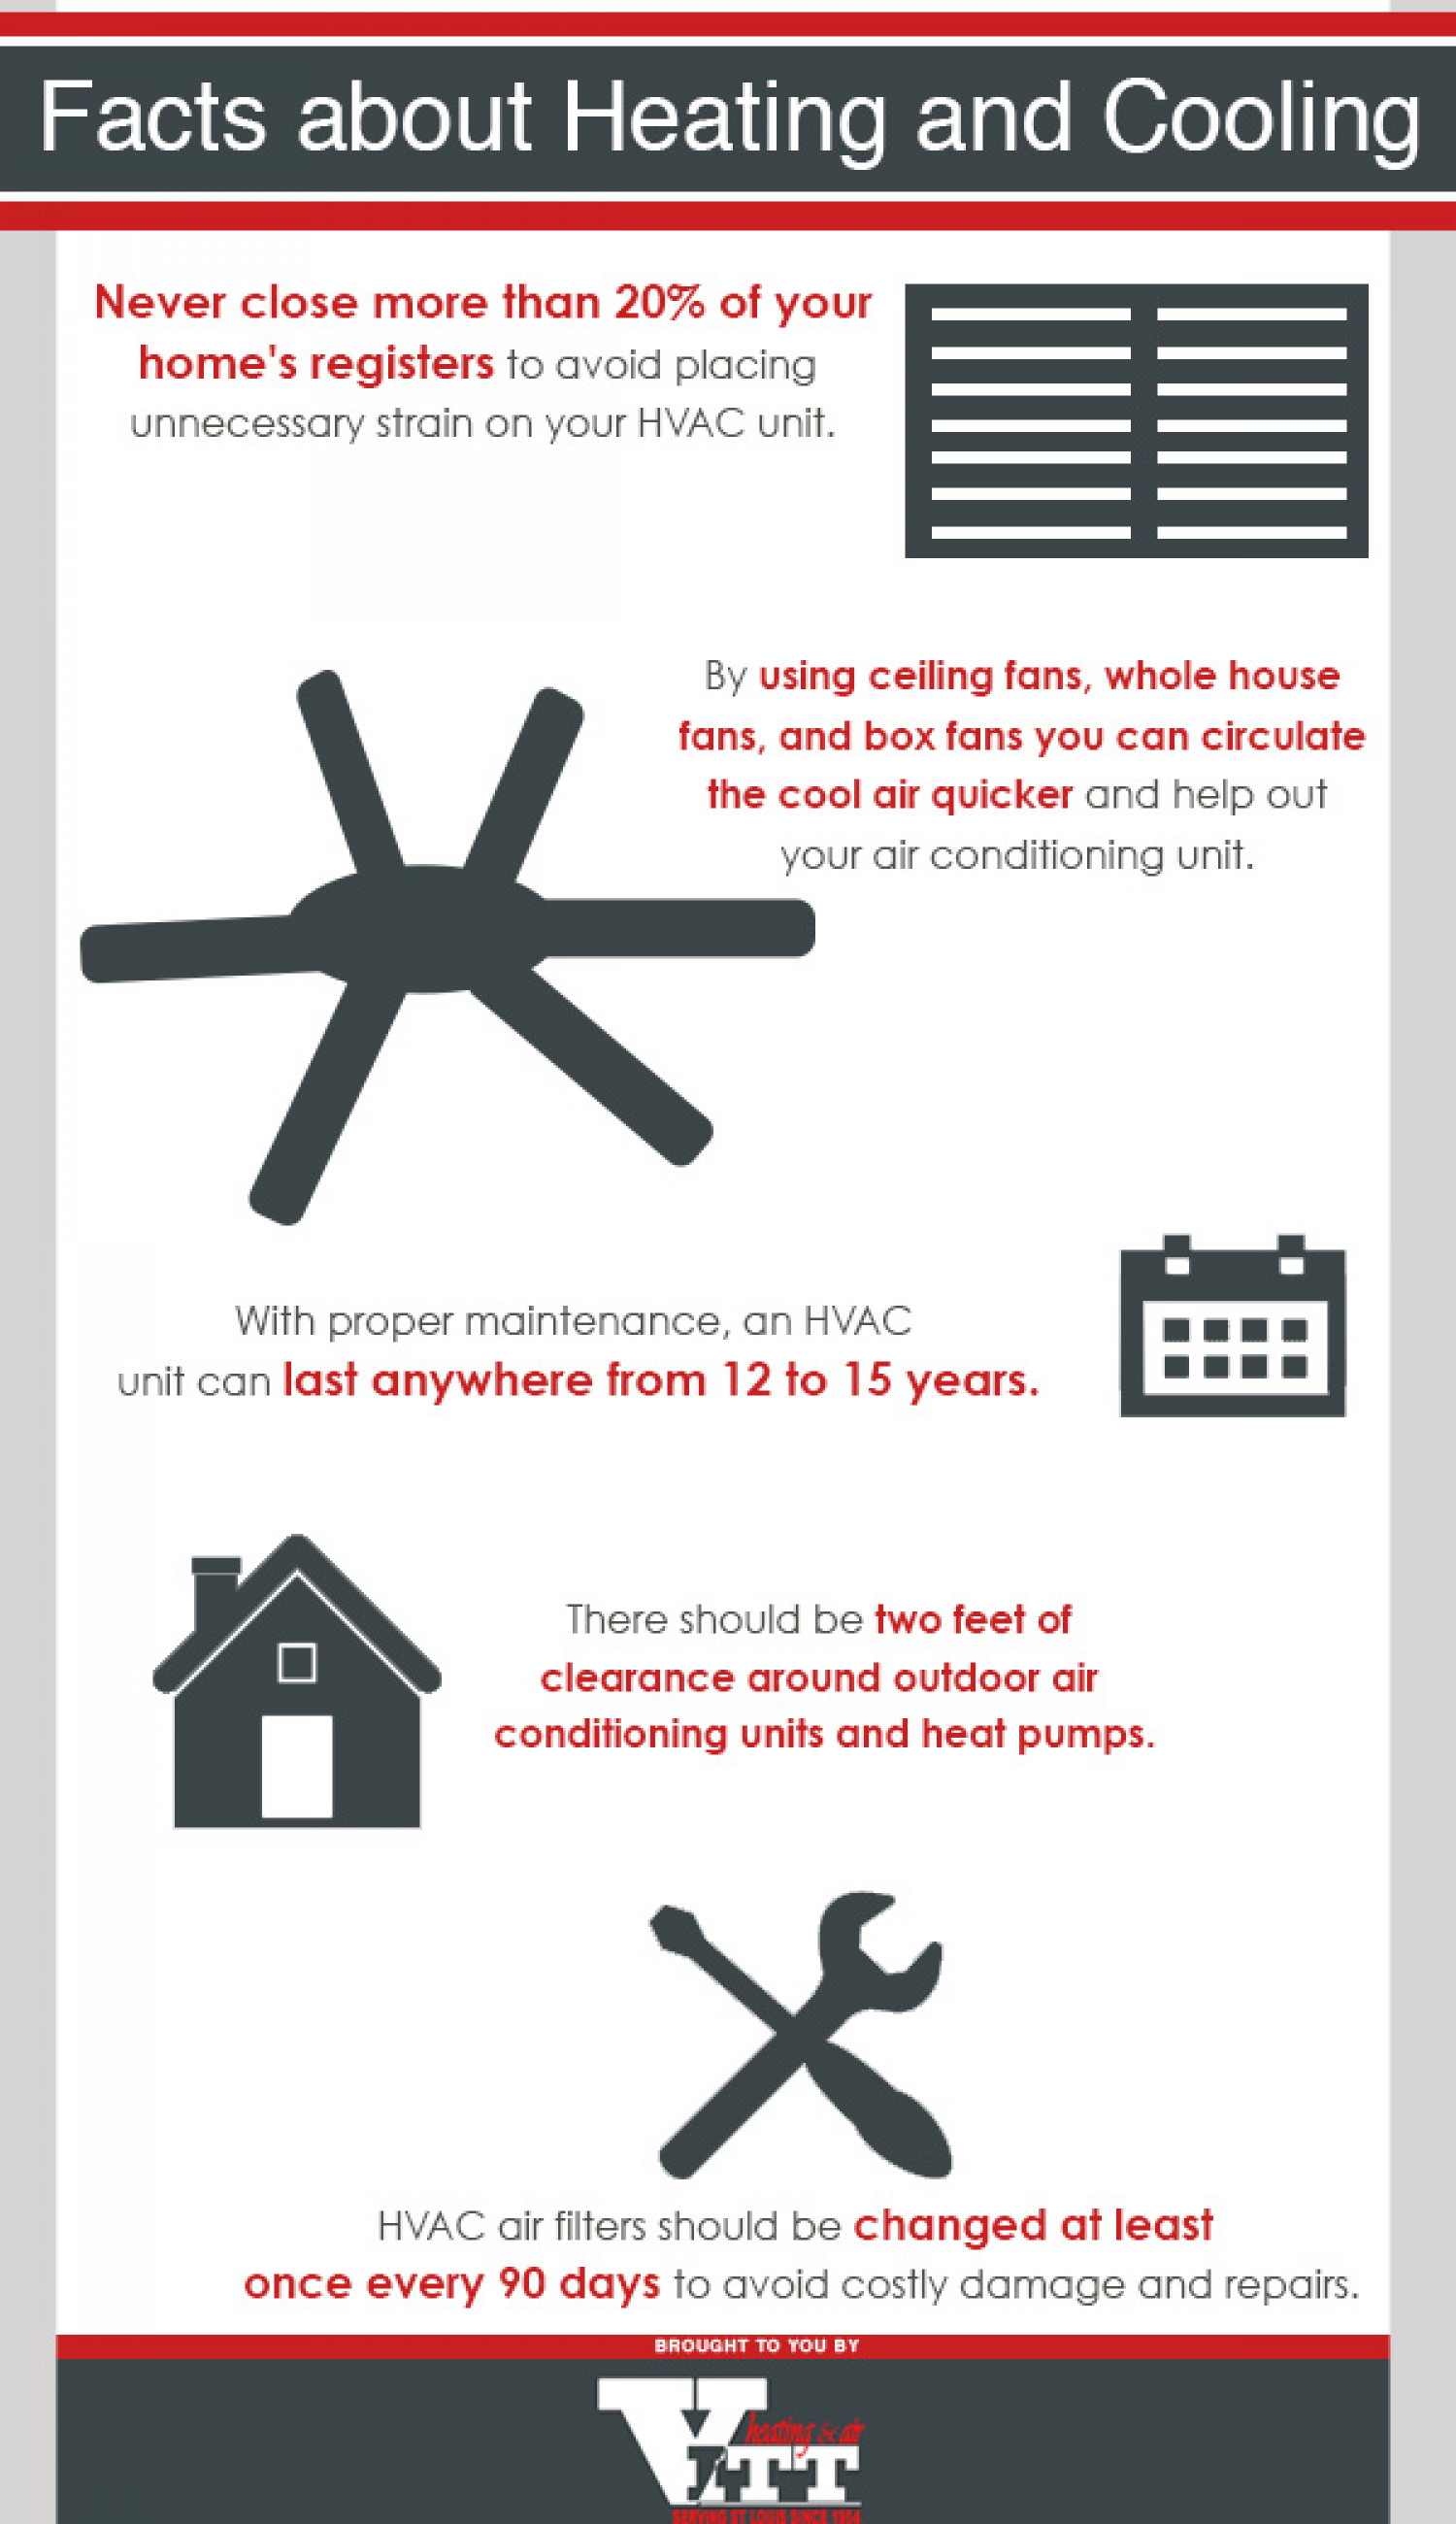 Facts About Heating Infographic